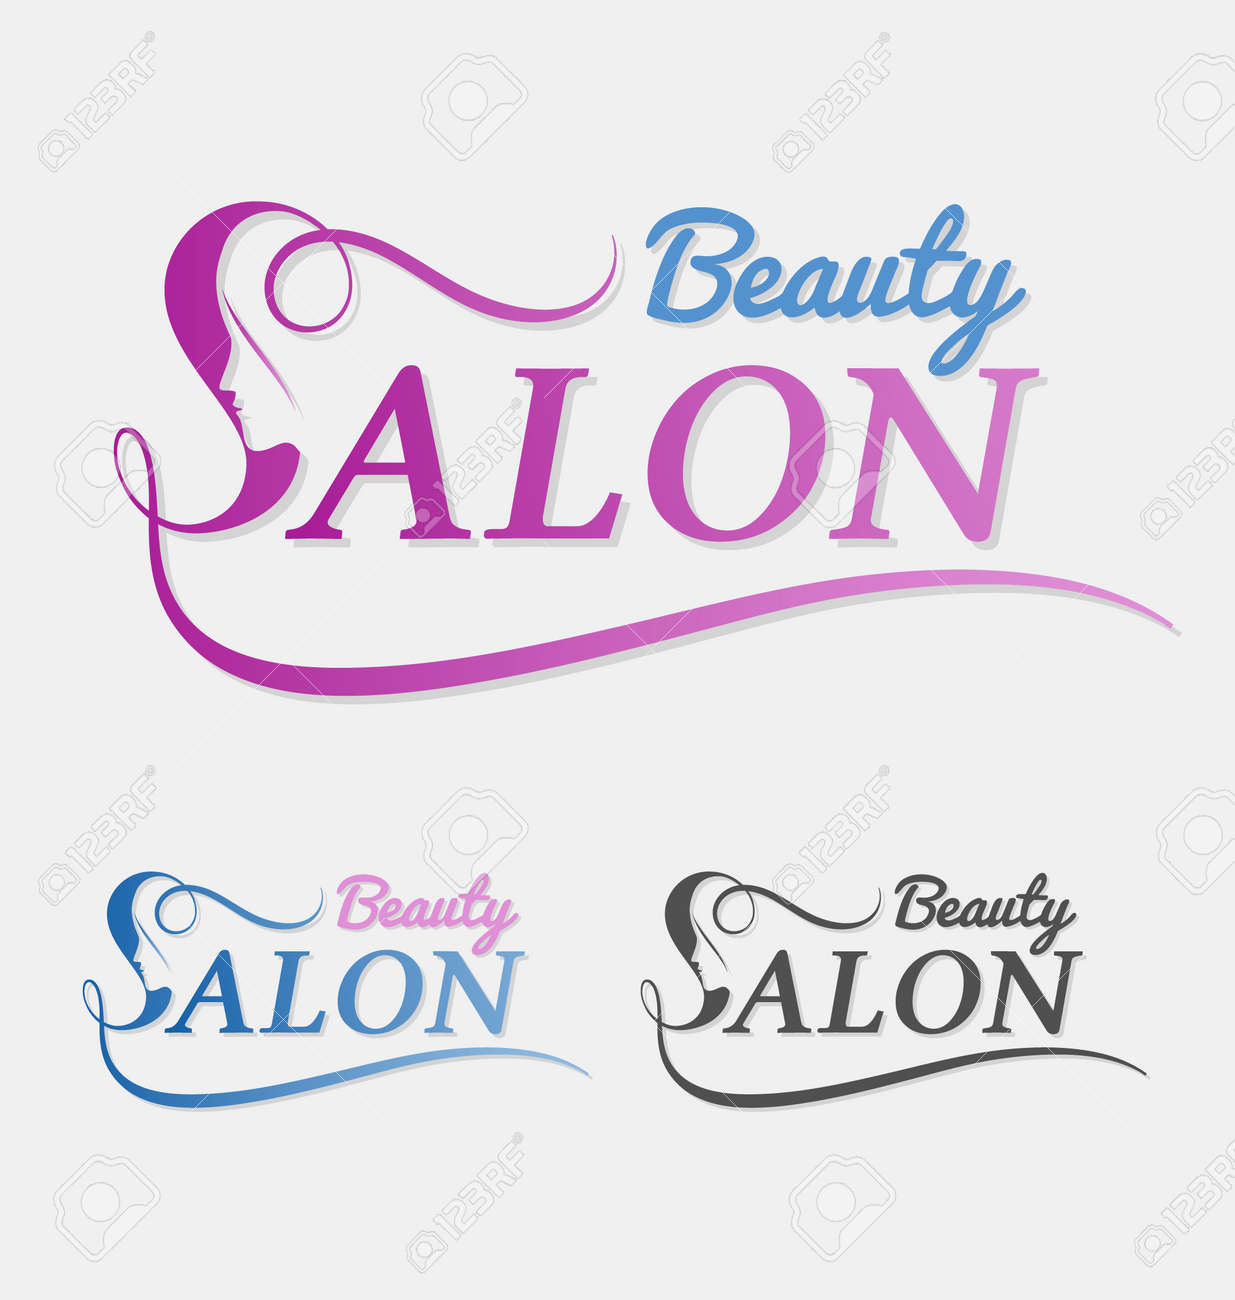 Beauty salon design with female face in negative space on letter S. Suitable for beauty salon, spa, massage, cosmetic and beauty concept with letter s. Vector illustration - 45154709